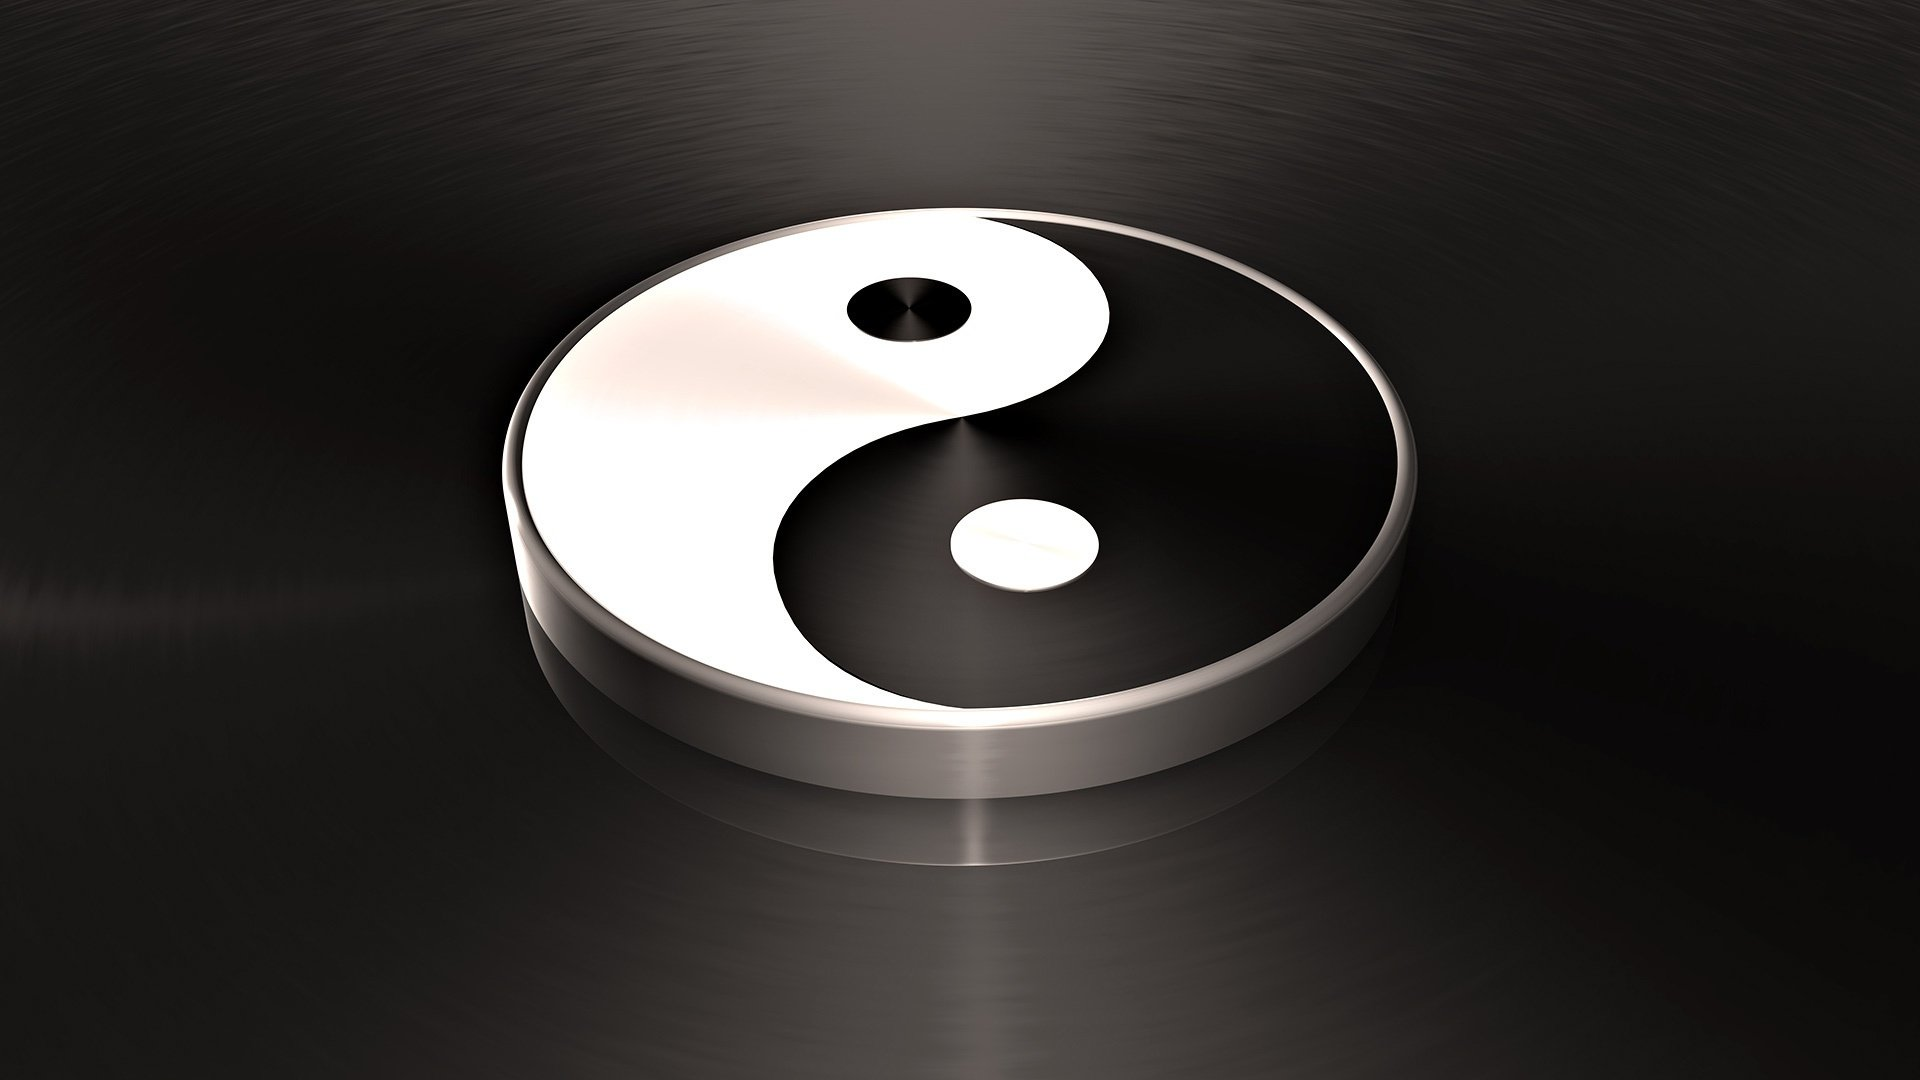 Awesome Yin and Yang free wallpaper ID:270707 for hd 1920x1080 desktop